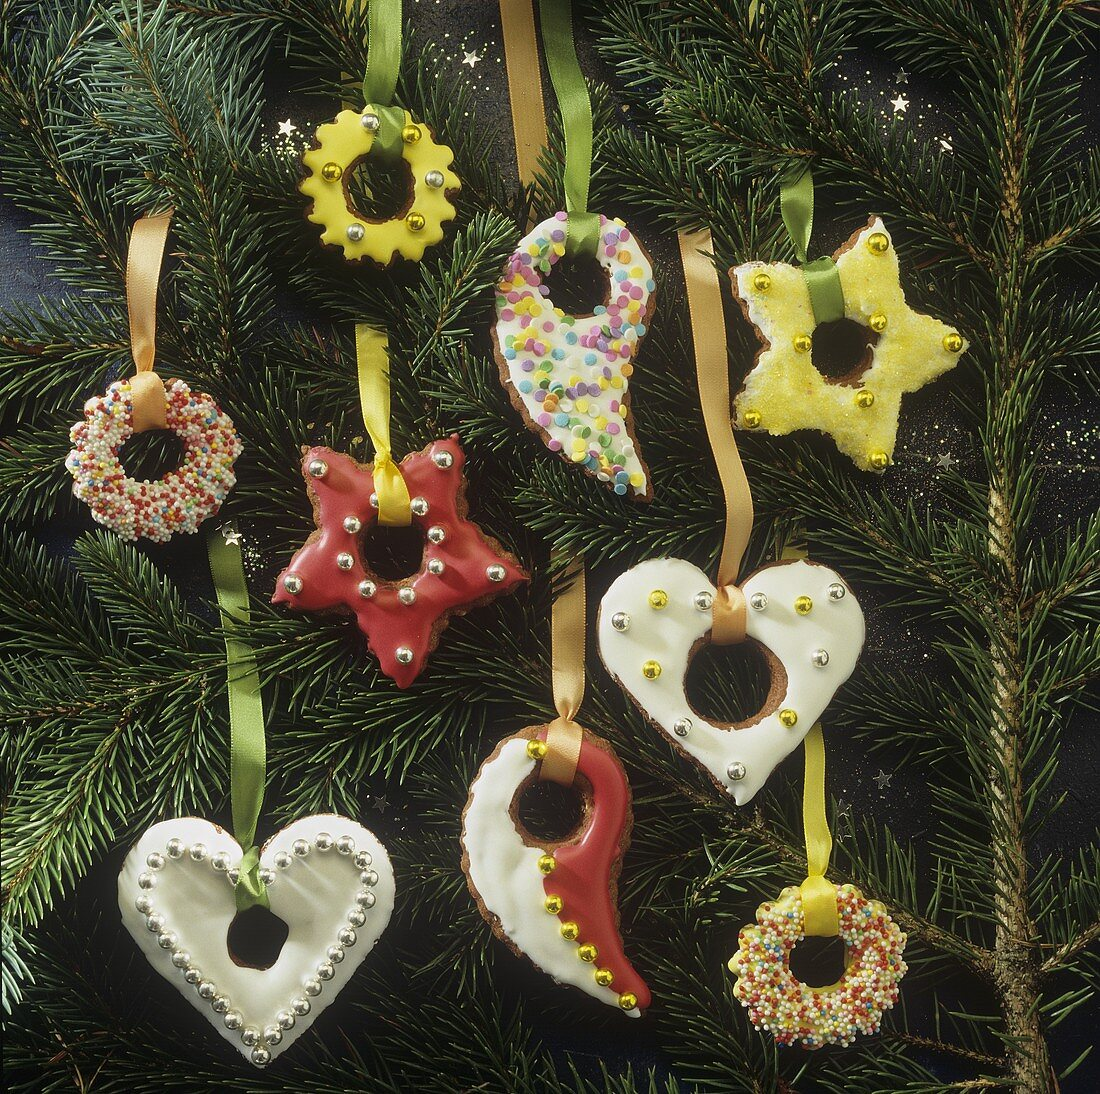 Gingerbread biscuits (to hang on the Christmas tree)